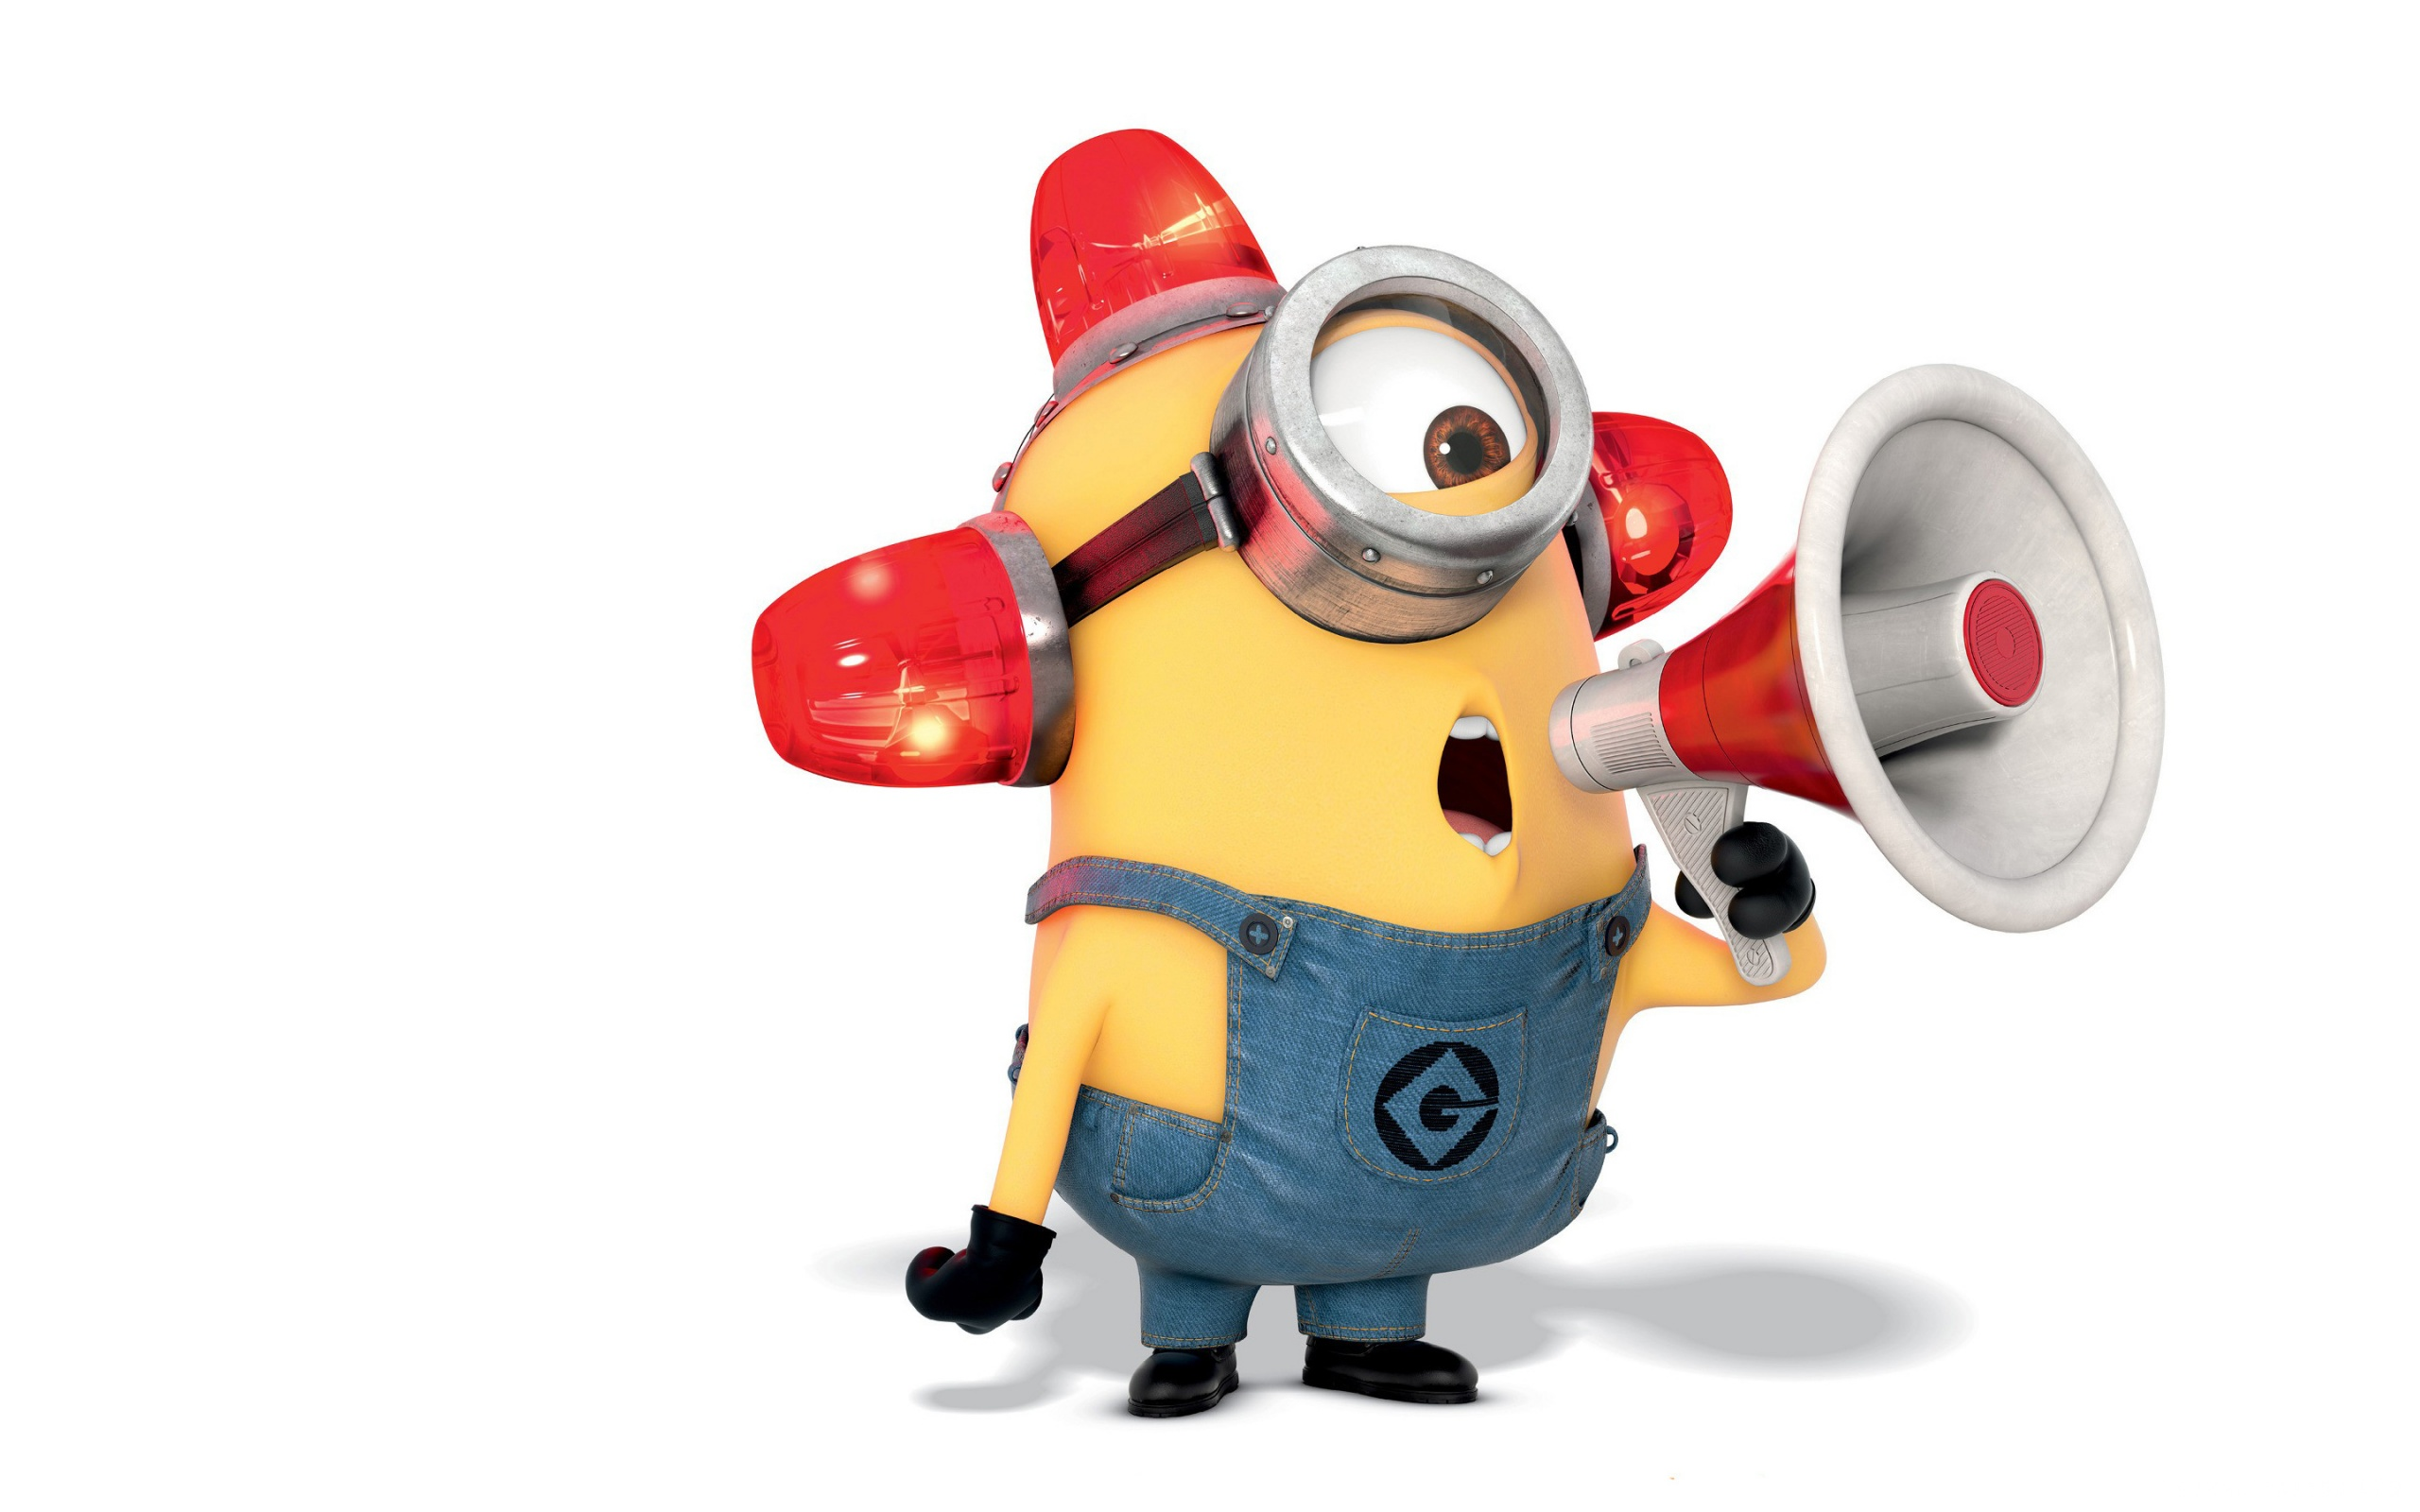 Funny Minion Wallpapers fire alarm   Wallpapers Mela 2560x1600